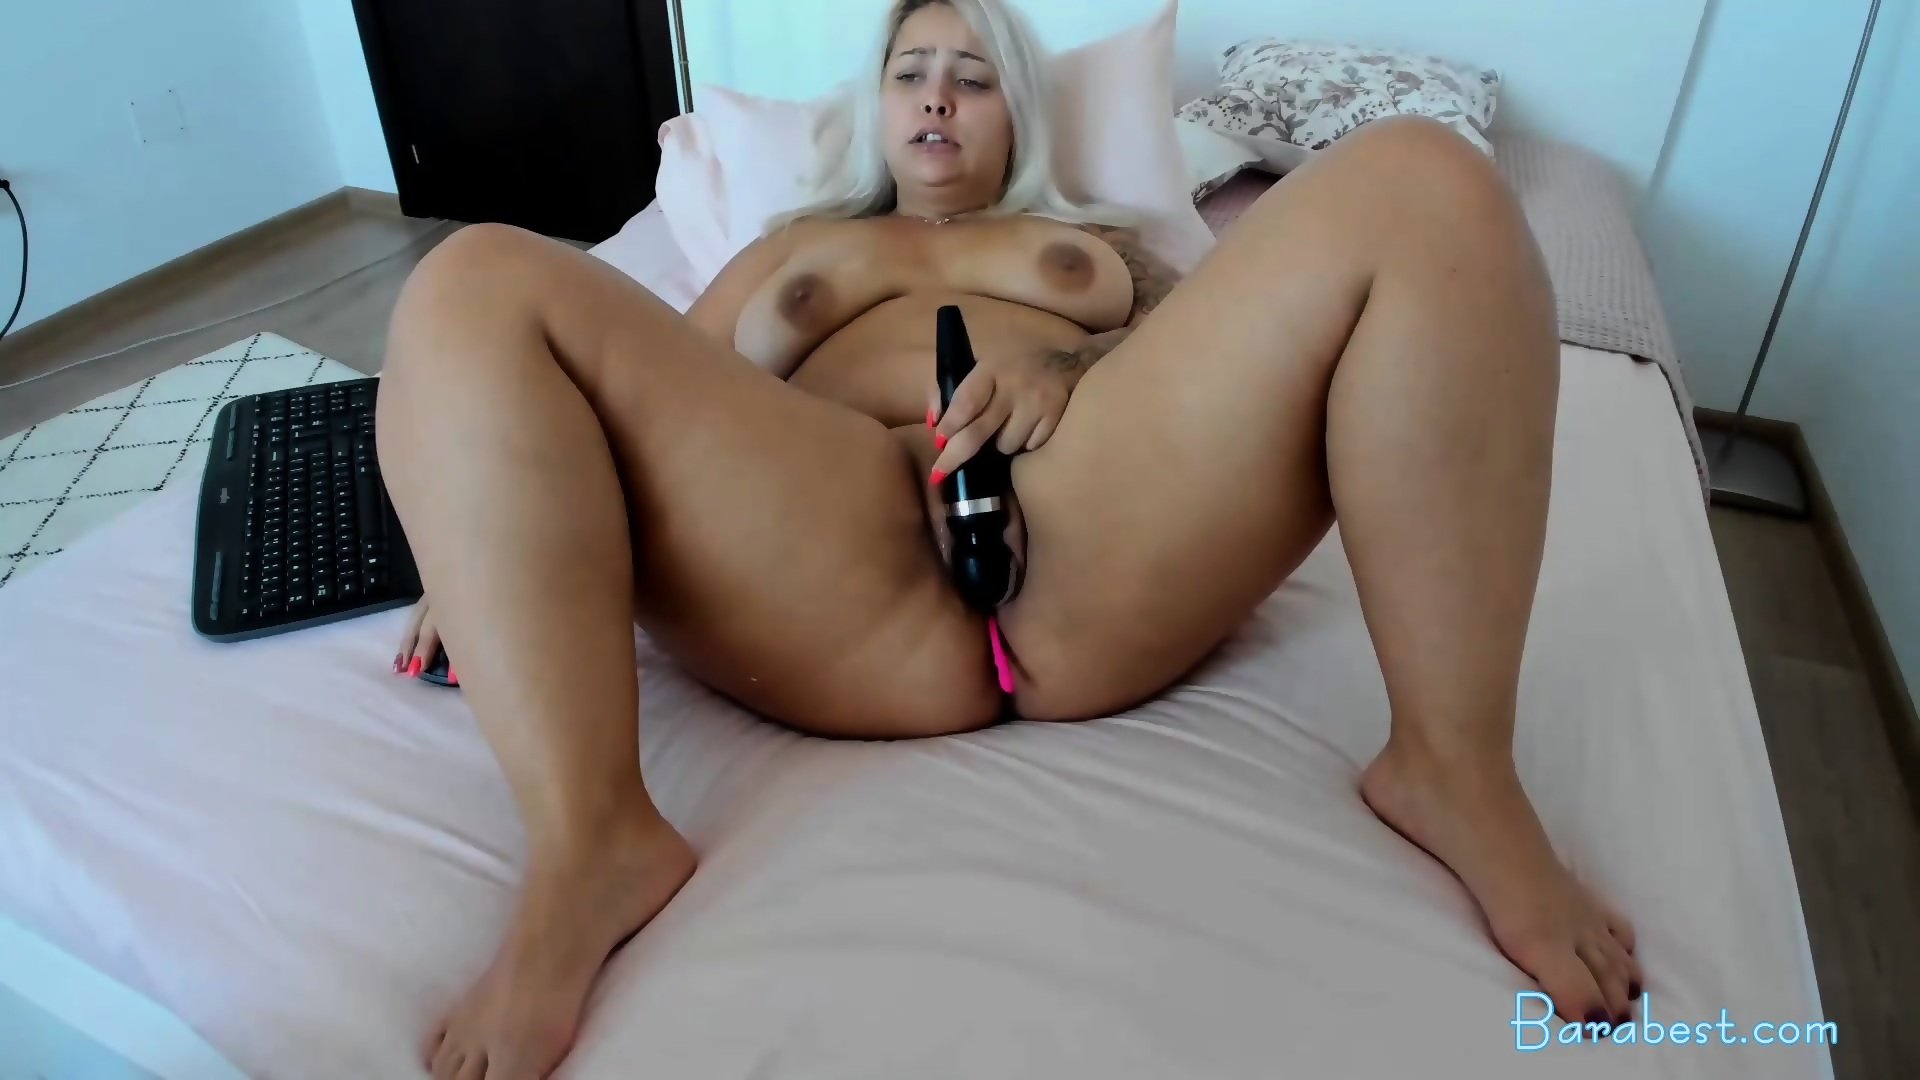 Sexy wife stories free